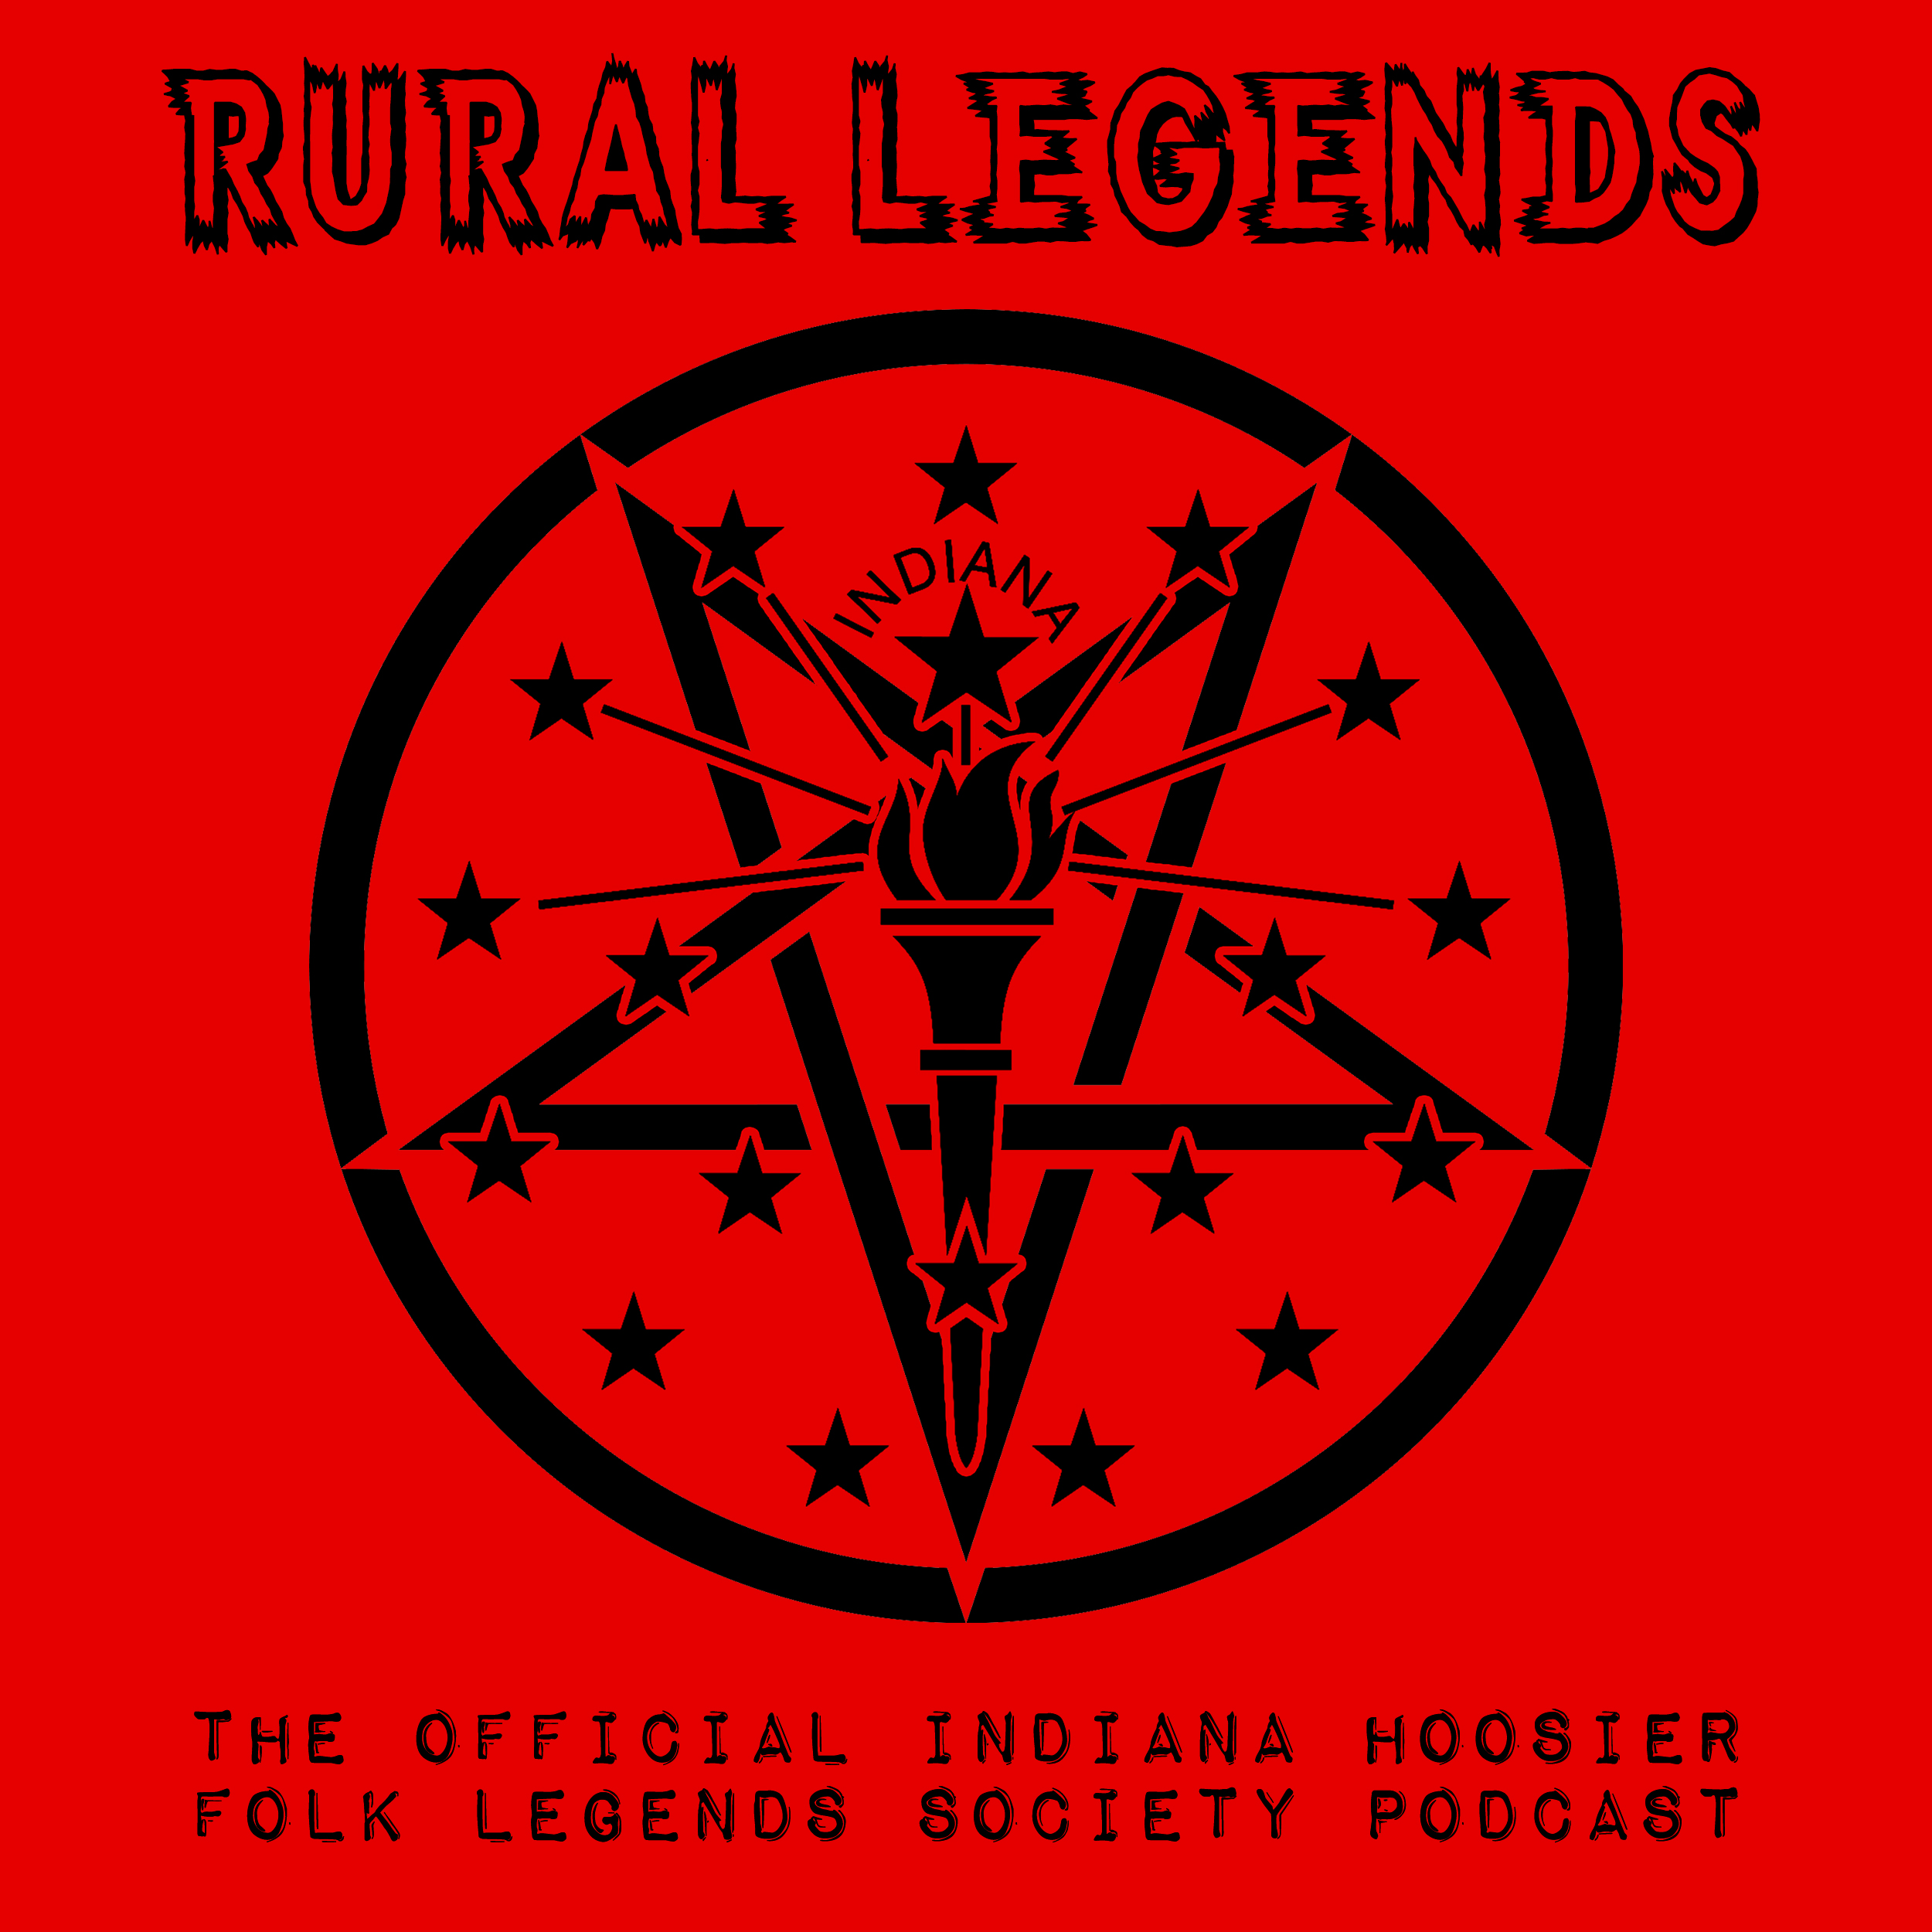 Rural-Legends-Art.jpg